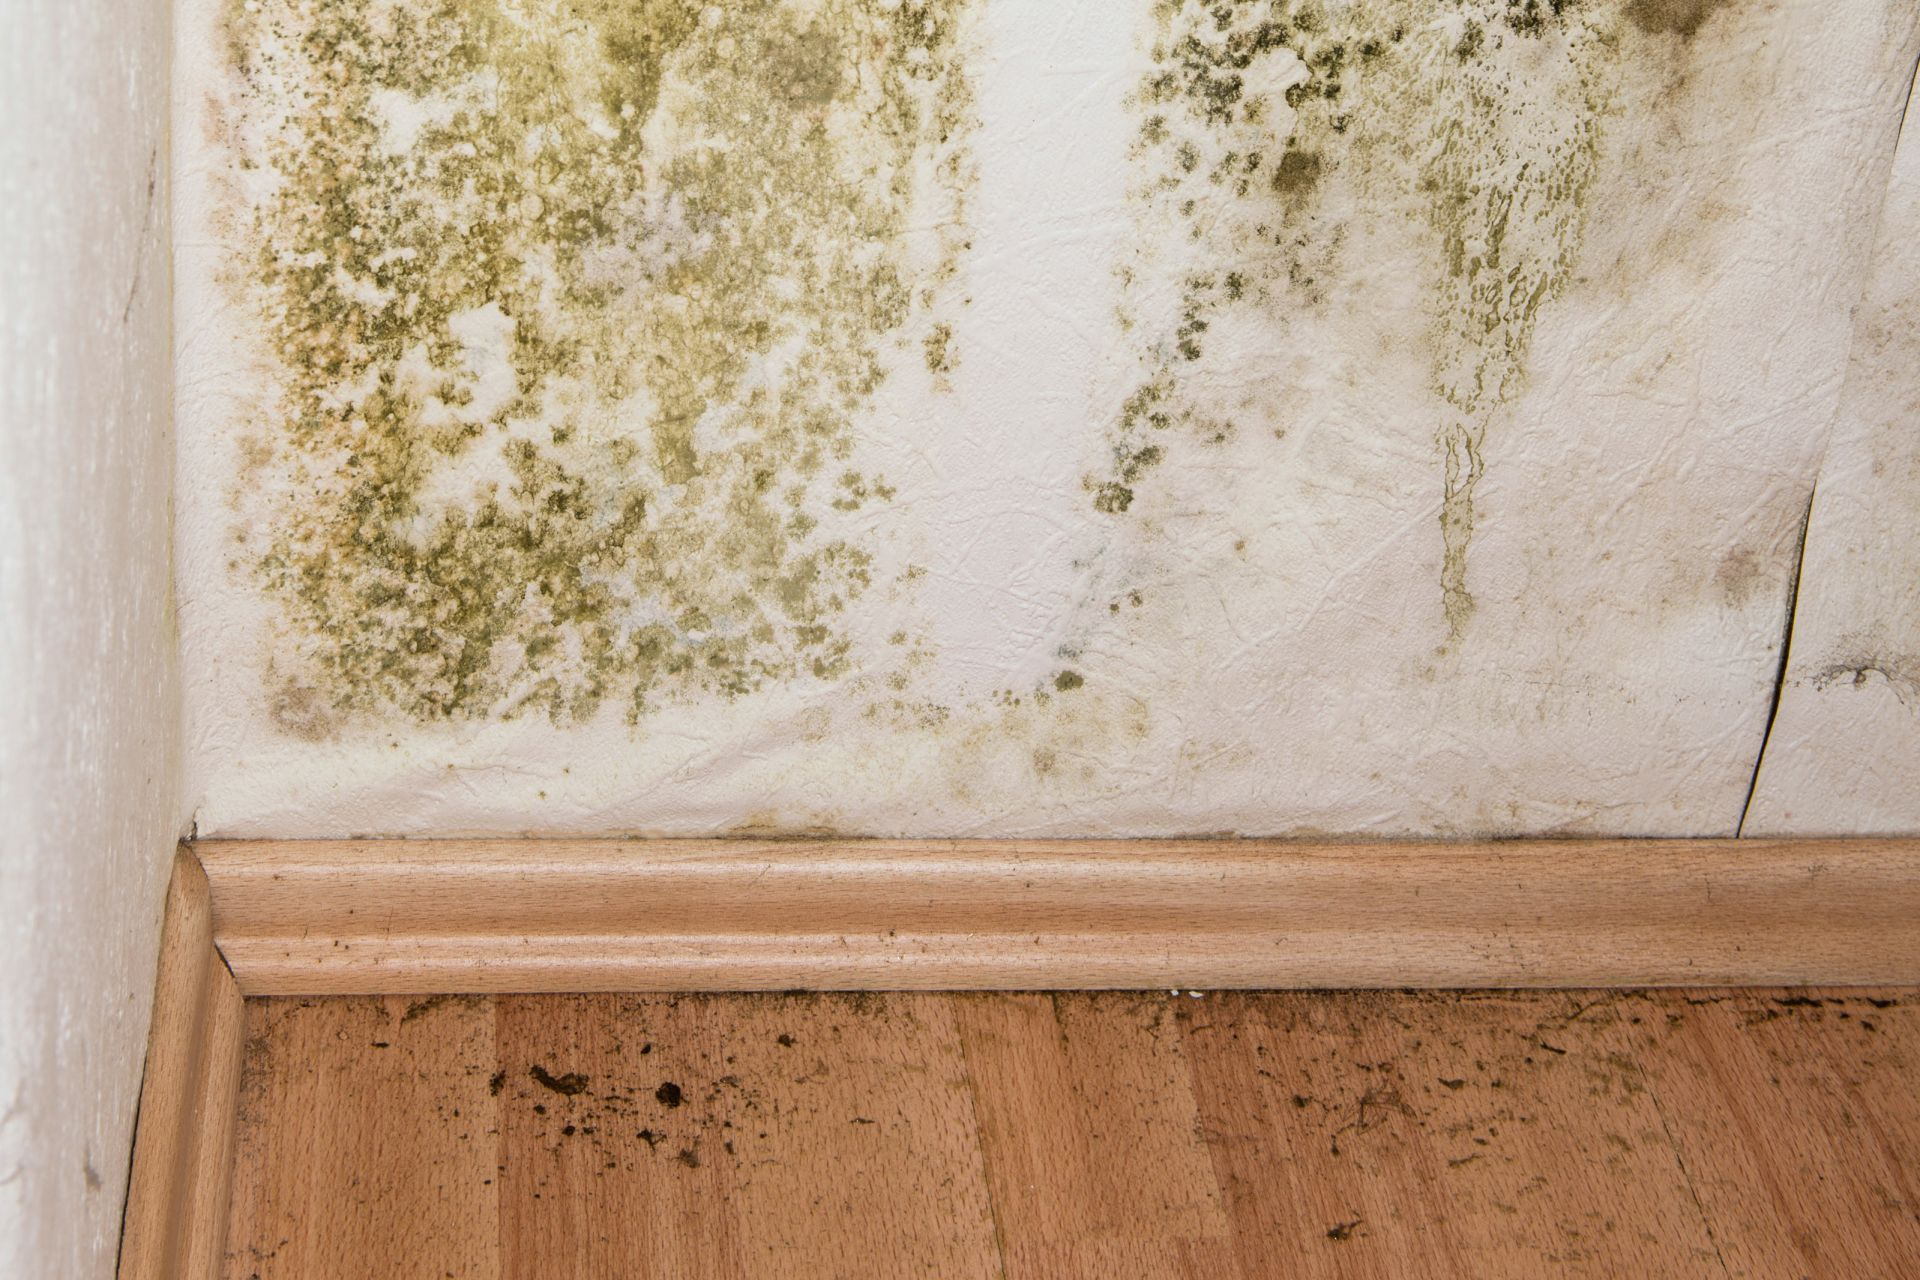 What Do I Need to Know About Mold?